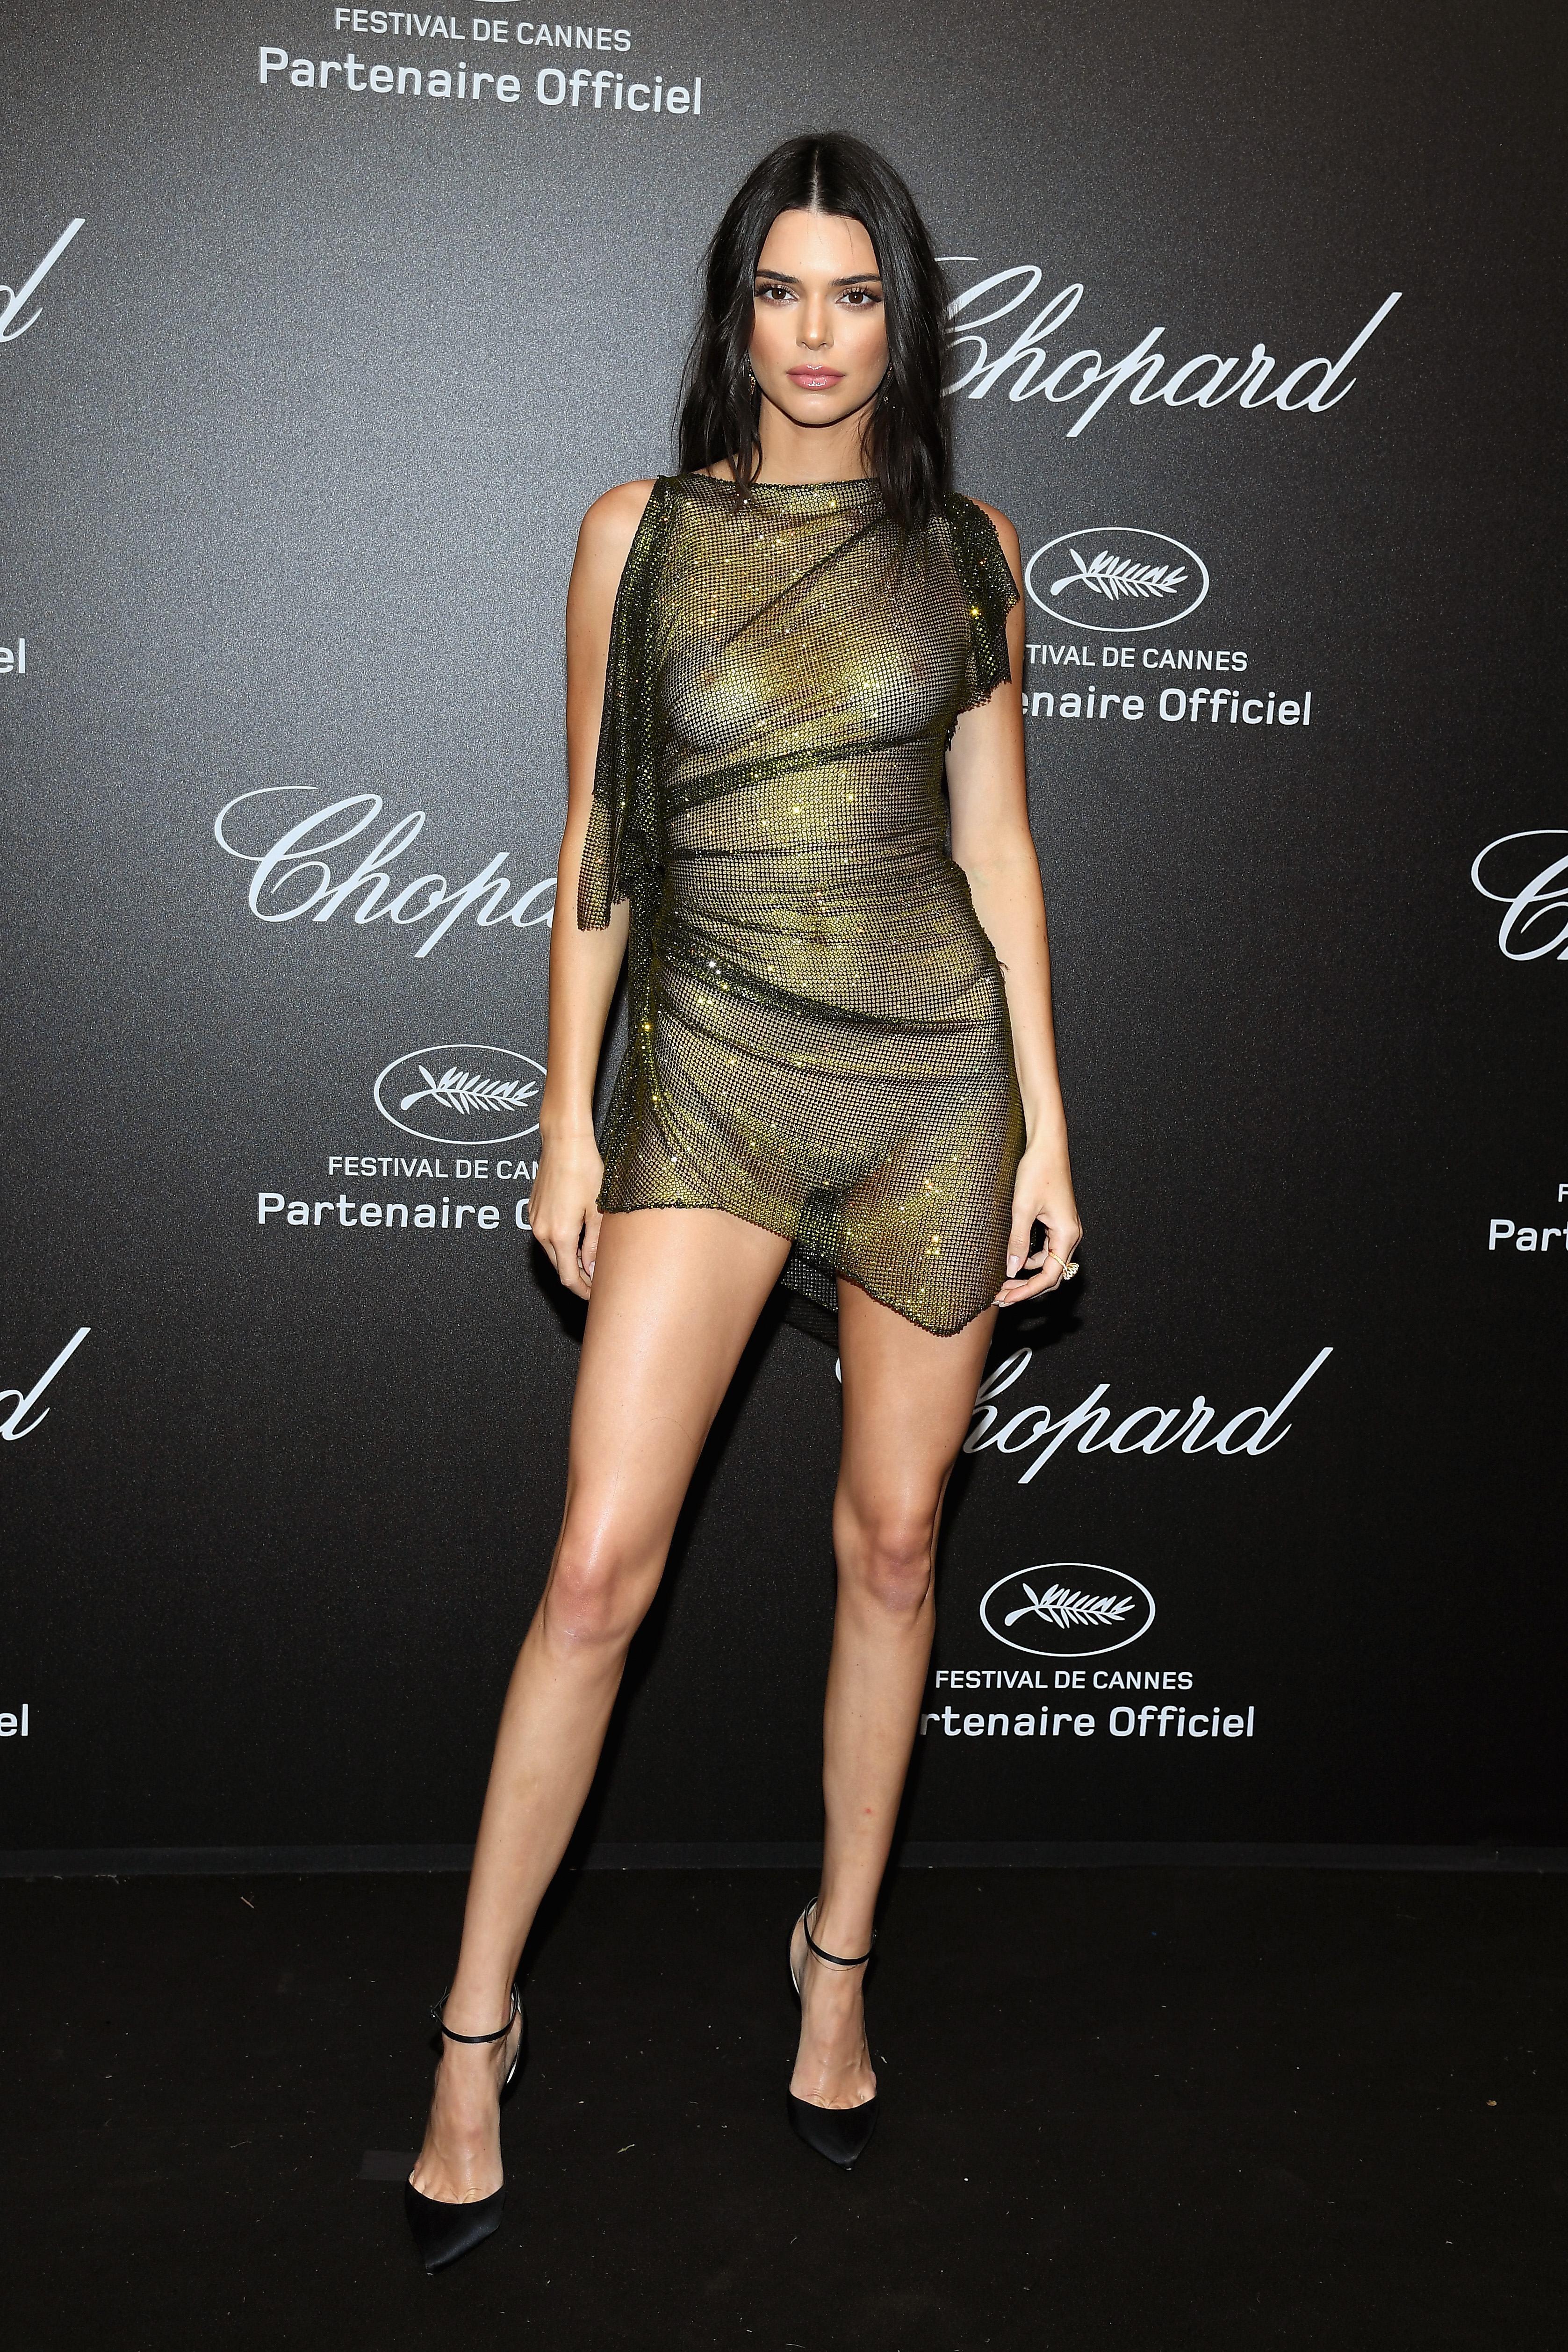 <p>If the bold, beautiful and barely-there attire of this year's Met Gala wasn't enough to scratch your sartorial itch, then you can rejoice in knowing you can revel in the world's most picturesque red carpet at the 2018 Cannes red carpet.<br /> <br /> The festival sees some of the world's biggest names in fashion, film, and the arts touch down in the French Riviera for an annual international celebration of cinema.<br /> <br /> The affair has always adopted an anything goes attitude, which could explain Kendall Jenner's not one but two, daring sheer dresses.<br /> <br /> Click through to see the best red carpet looks  from this year's Cannes Film Festival.</p>